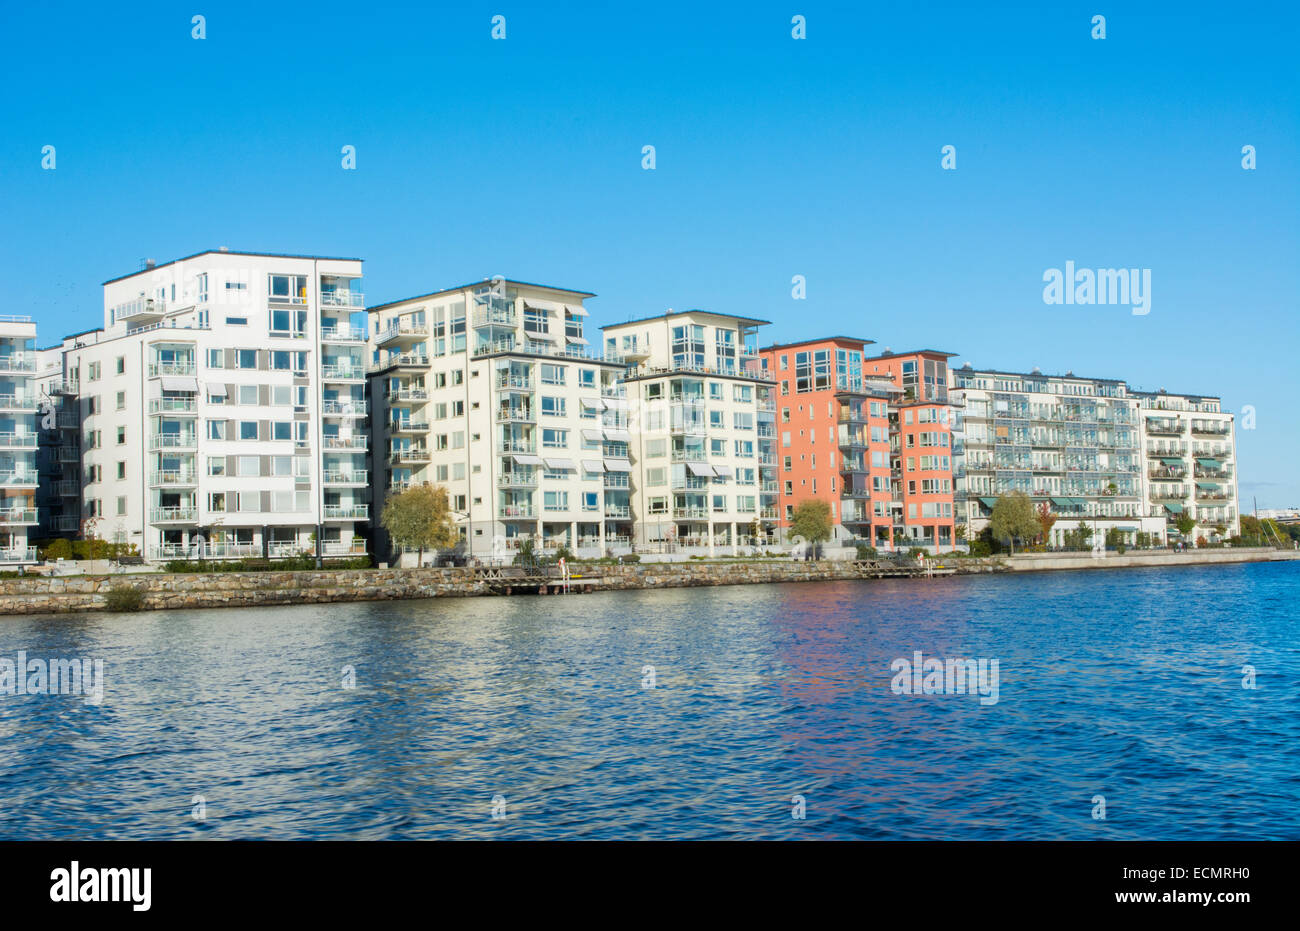 Stockholm Sweden modern apartments on water in suburbs from cruise ship - Stock Image